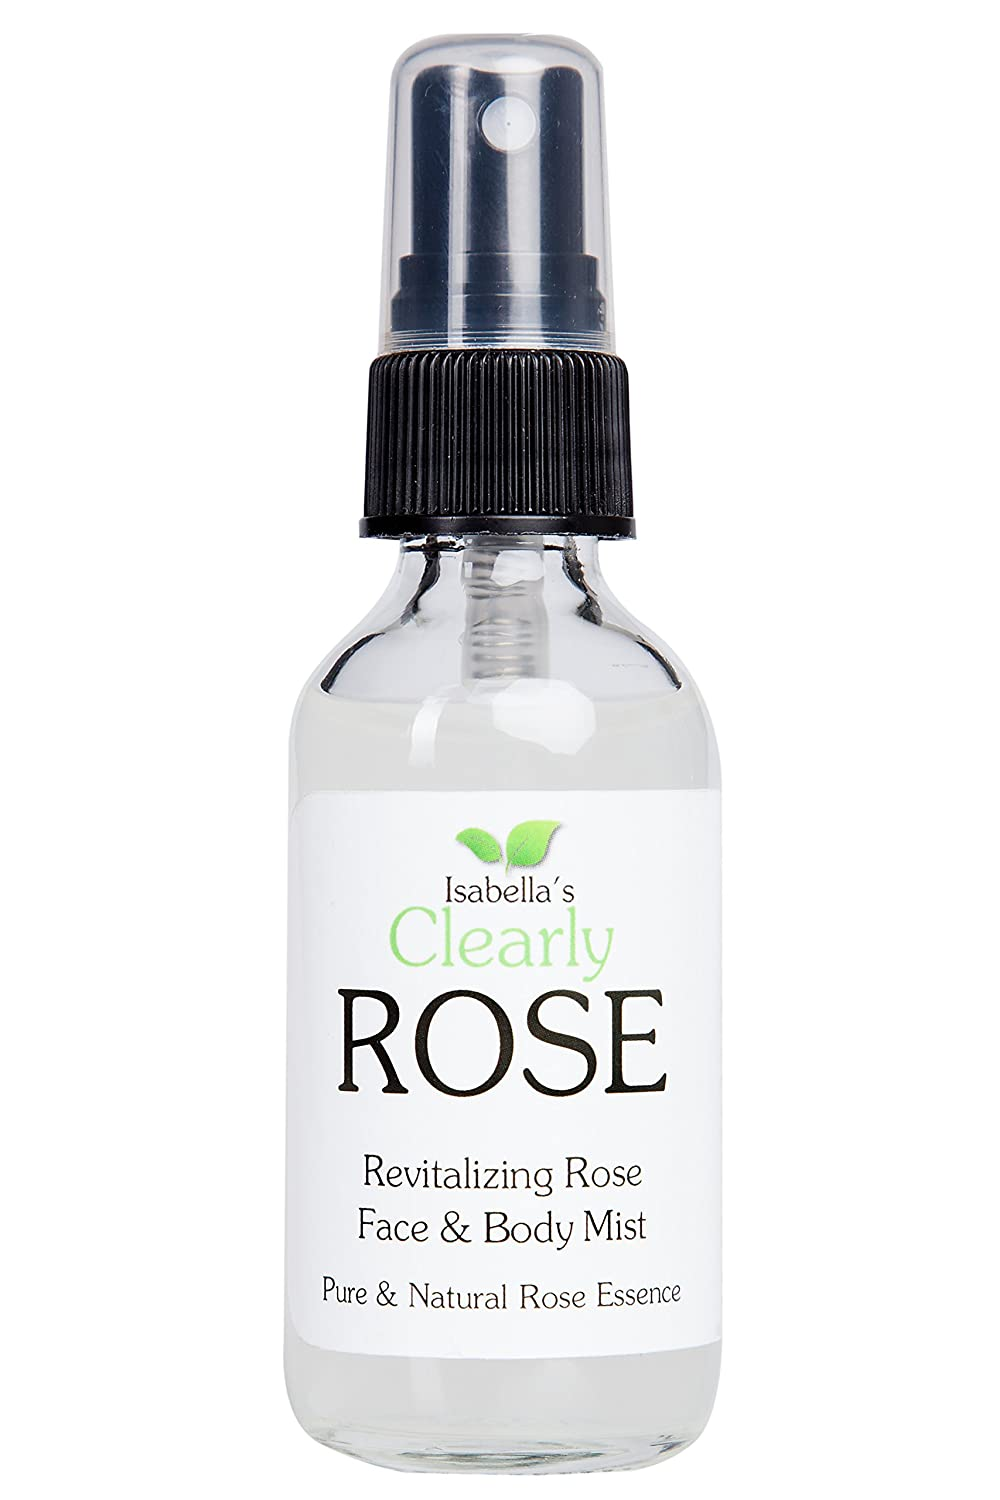 Isabella's Clearly ROSE, 100% Pure Rose Water, All Natural, Preservative Free, Additive Free. Facial Toner Spray, Body Mist, Linen Spray. Lovely Floral Fragrance. Aromatherapy for Face, Hair, Body and Mind. 2 Oz Isabella' s Clearly ROSE 10005